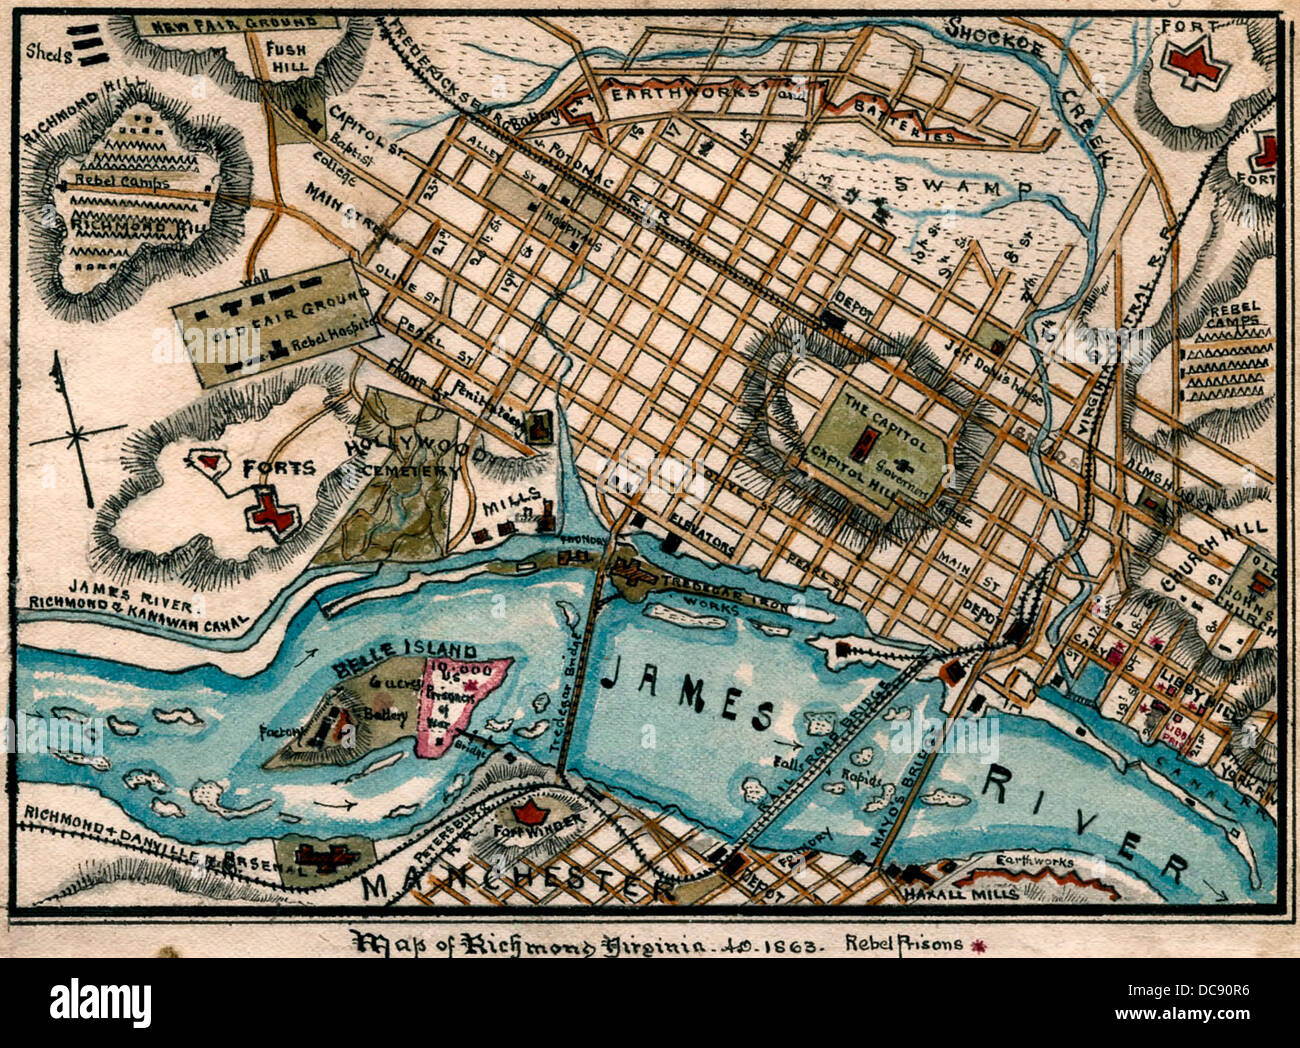 Civil War Sites In Virginia Map.Map Of Richmond Virginia During Usa Civil War 1863 Stock Photo